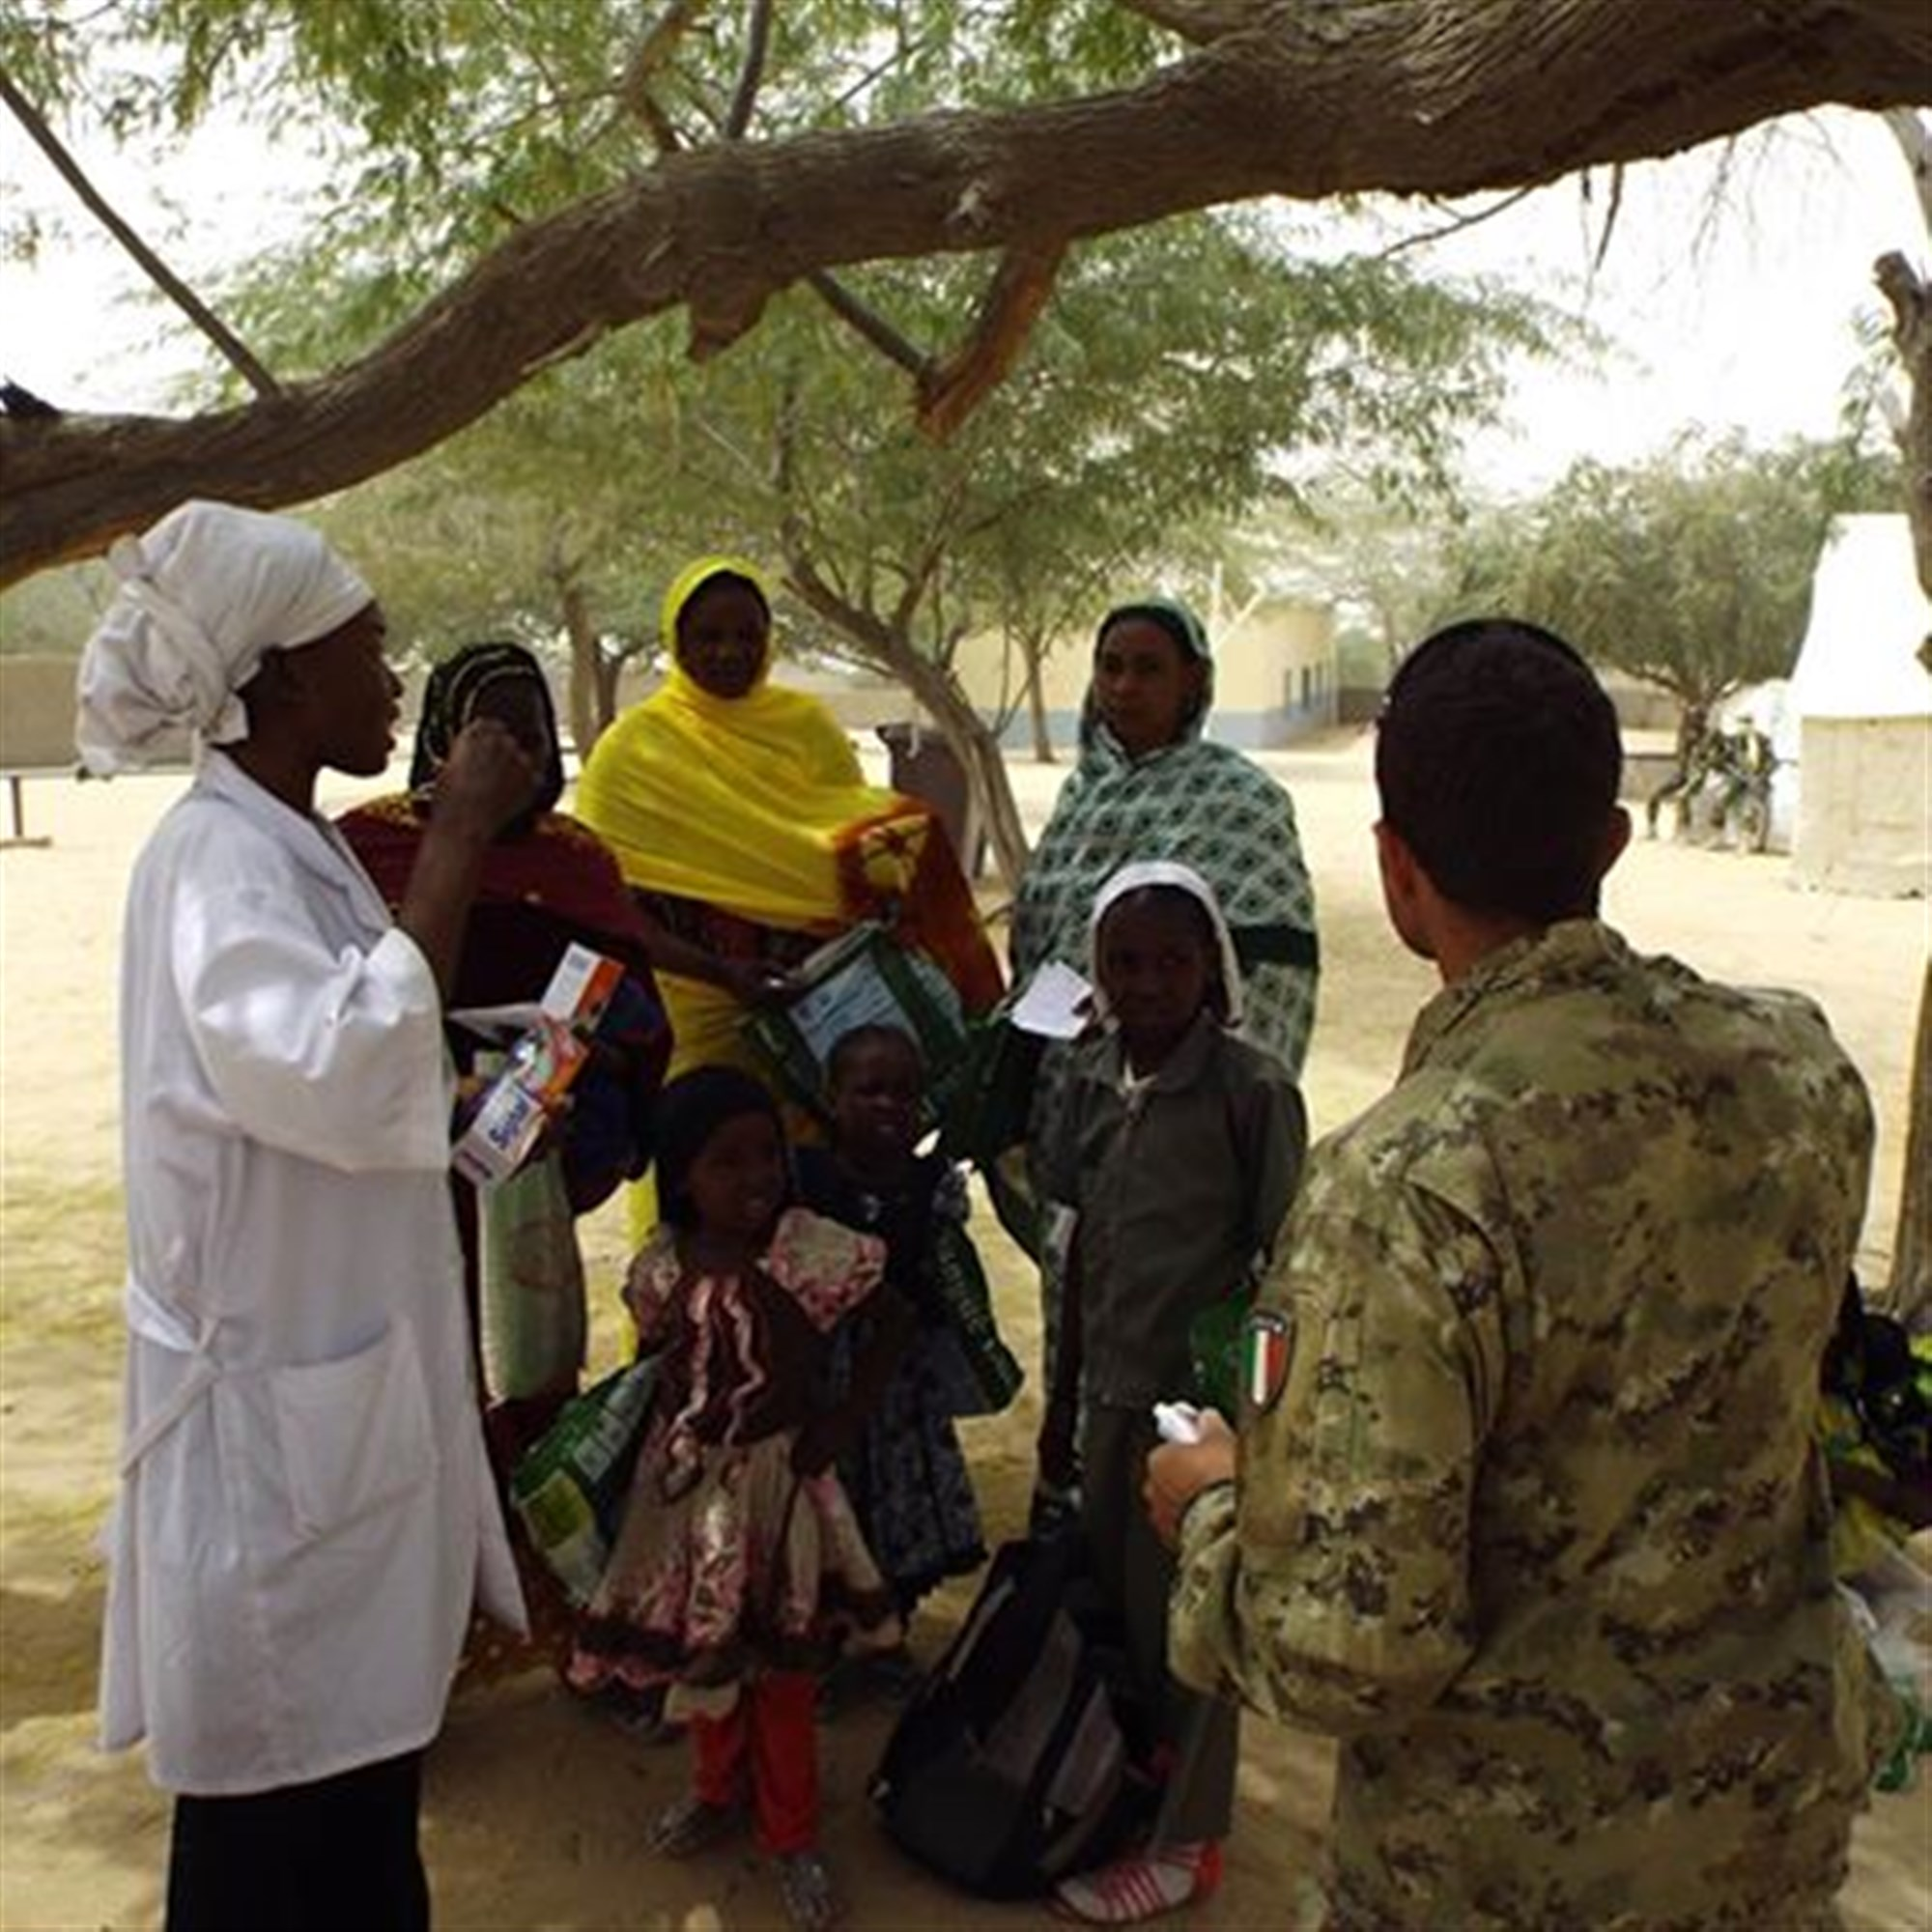 Chadians receive information about treatment from medical care personnel during Exercise Flintlock 2015.